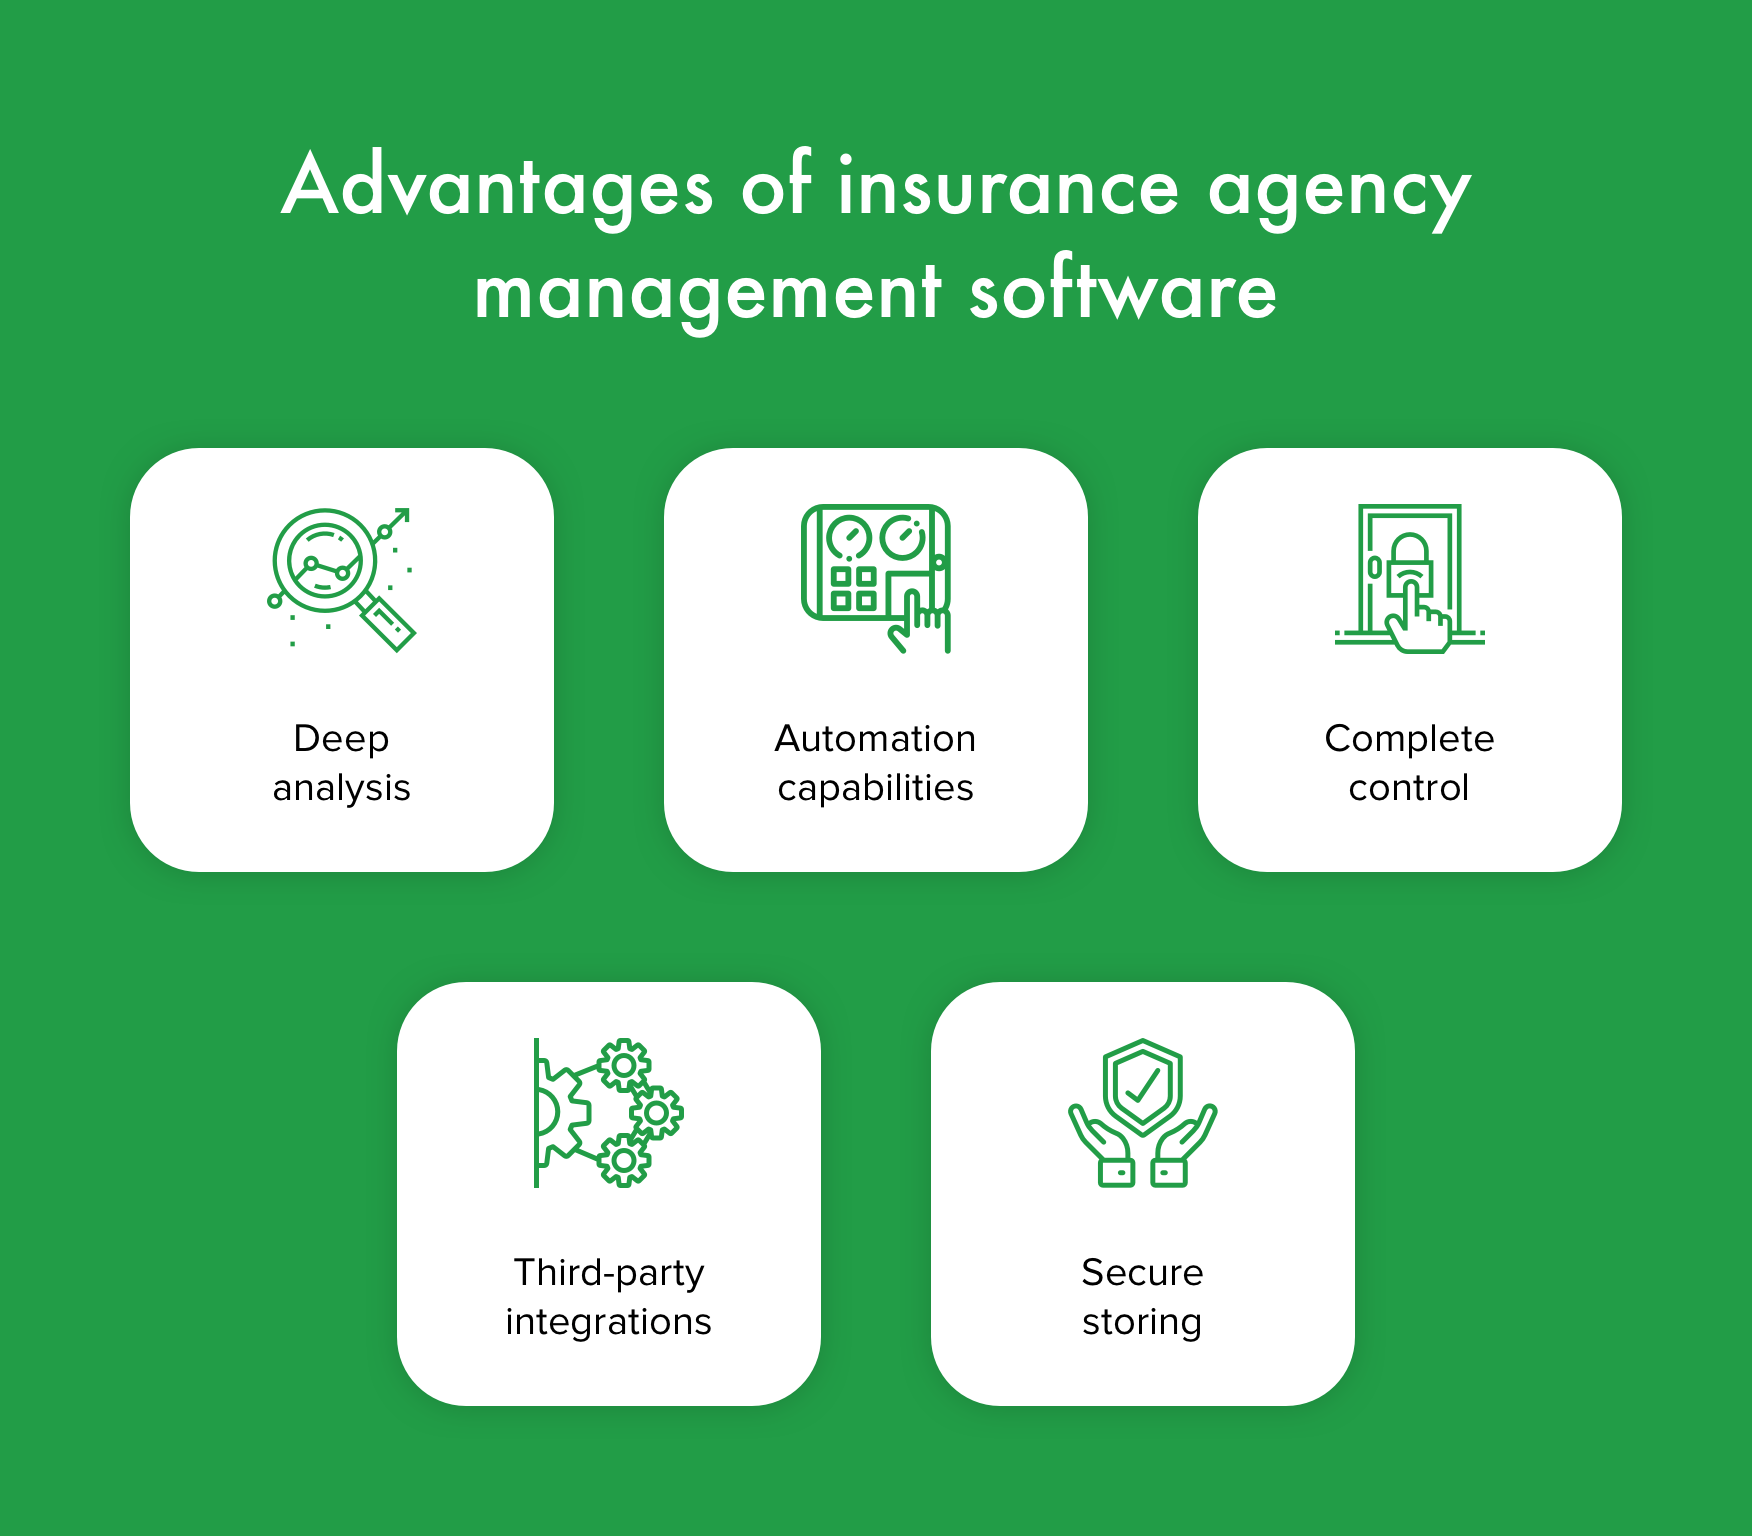 Advantages of insurance agency management software